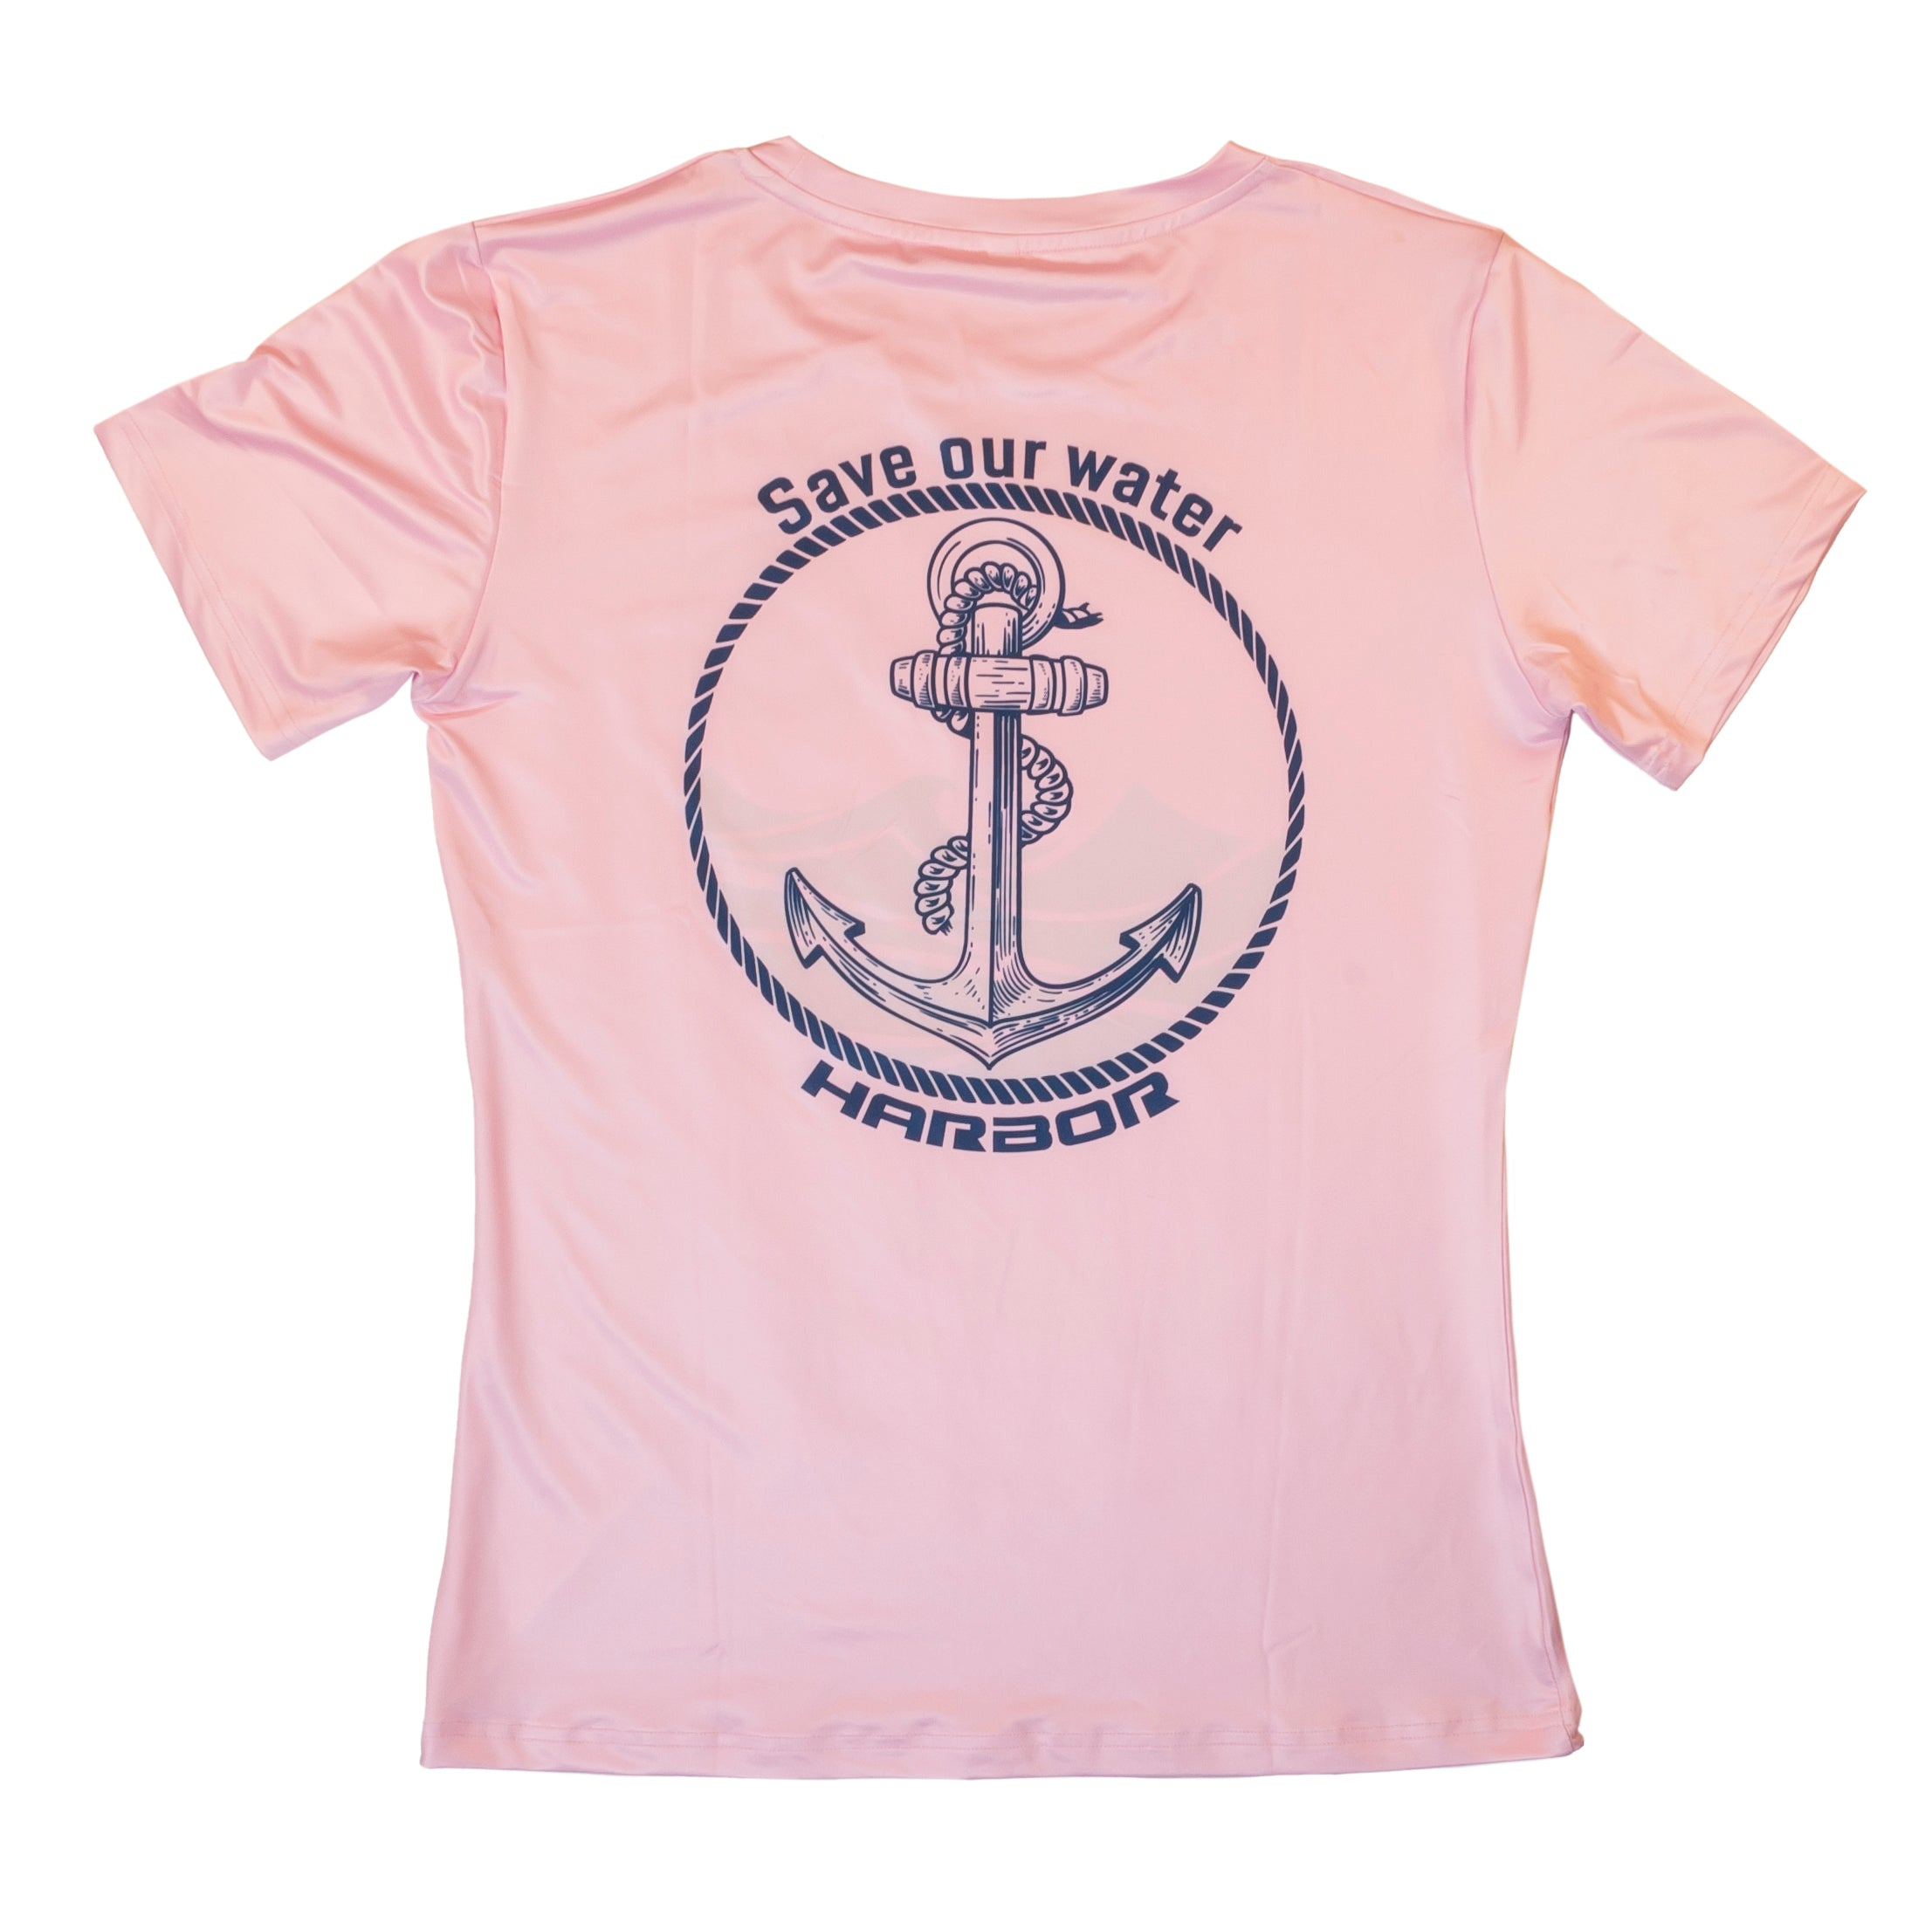 Save Our Water T-Shirt With Anchor Logo